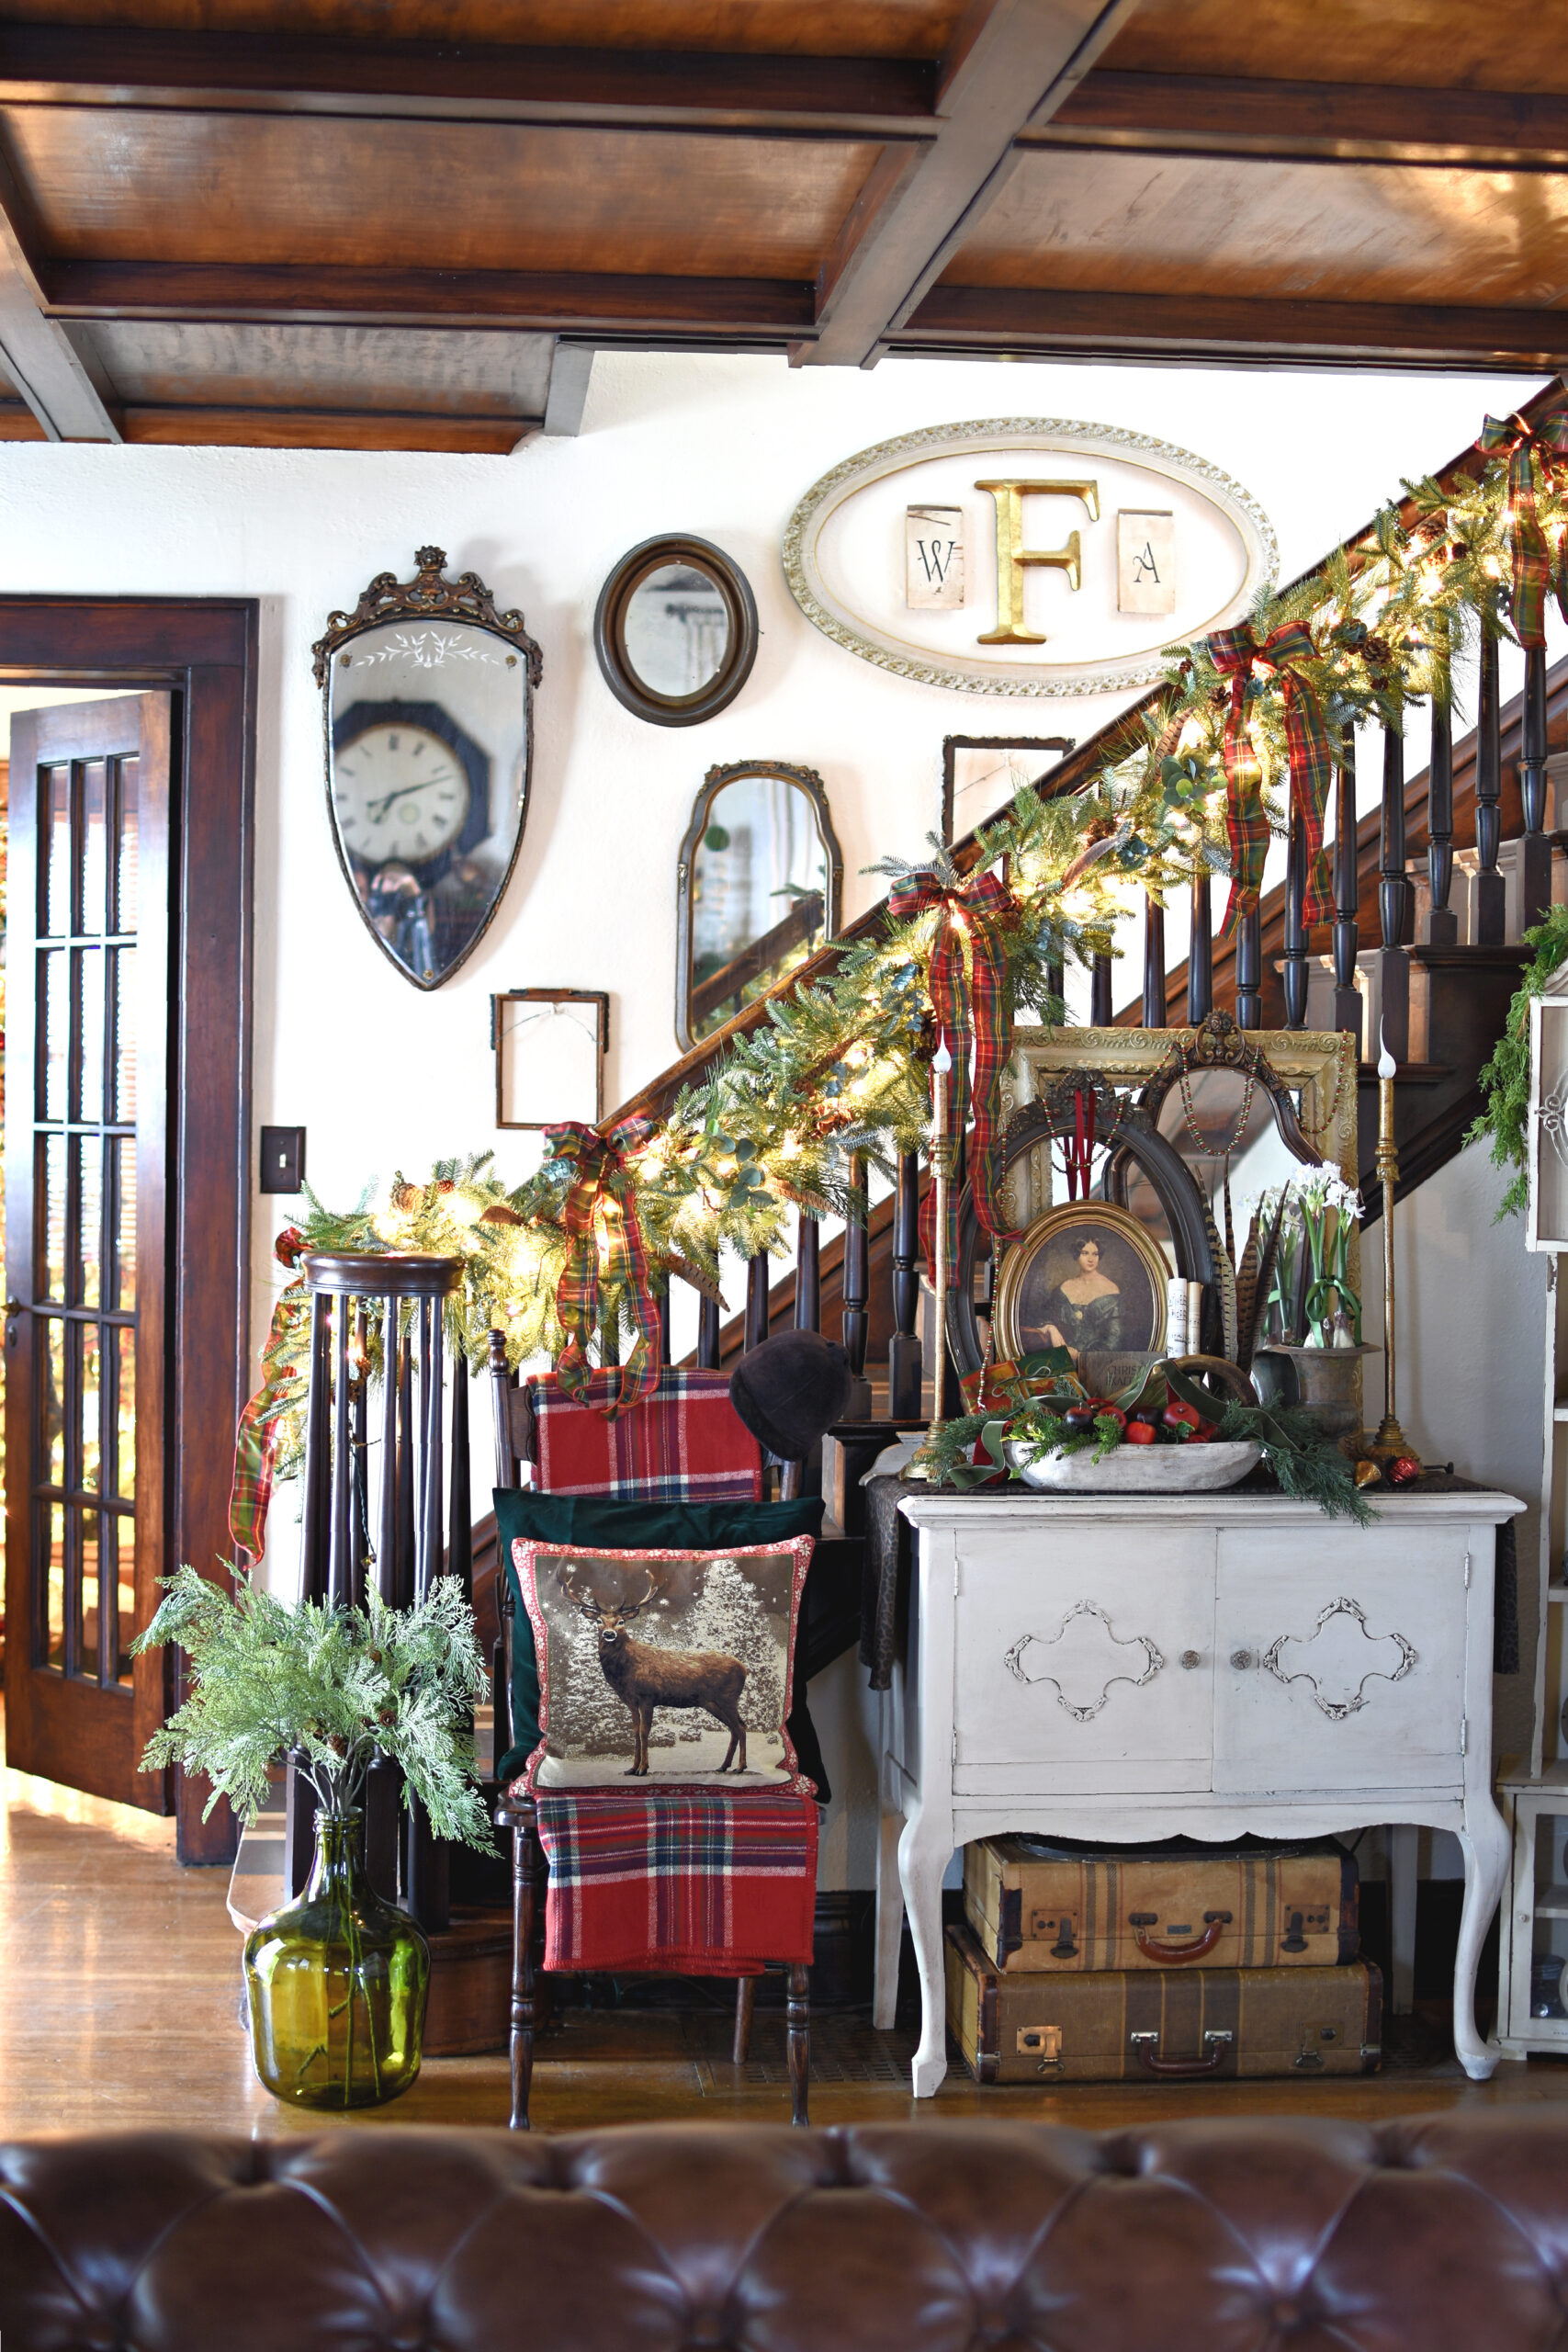 Cozy Christmas staircase with traditional Christmas plaids and antiques. Unique English Country Christmas decorating ideas. Victorian Christmas decorating